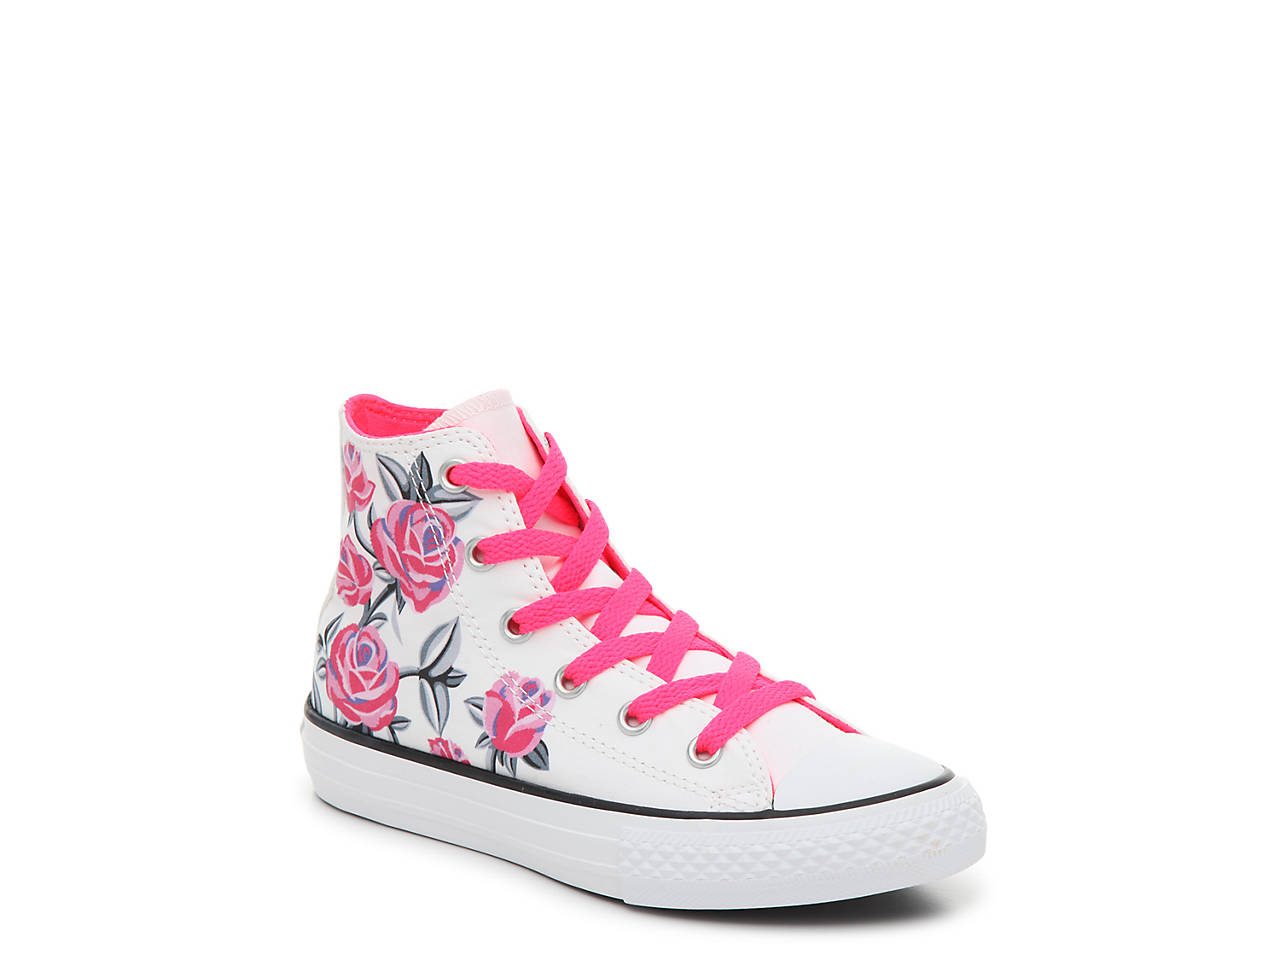 Converse Chuck Taylor All Star Pretty Strong High Top